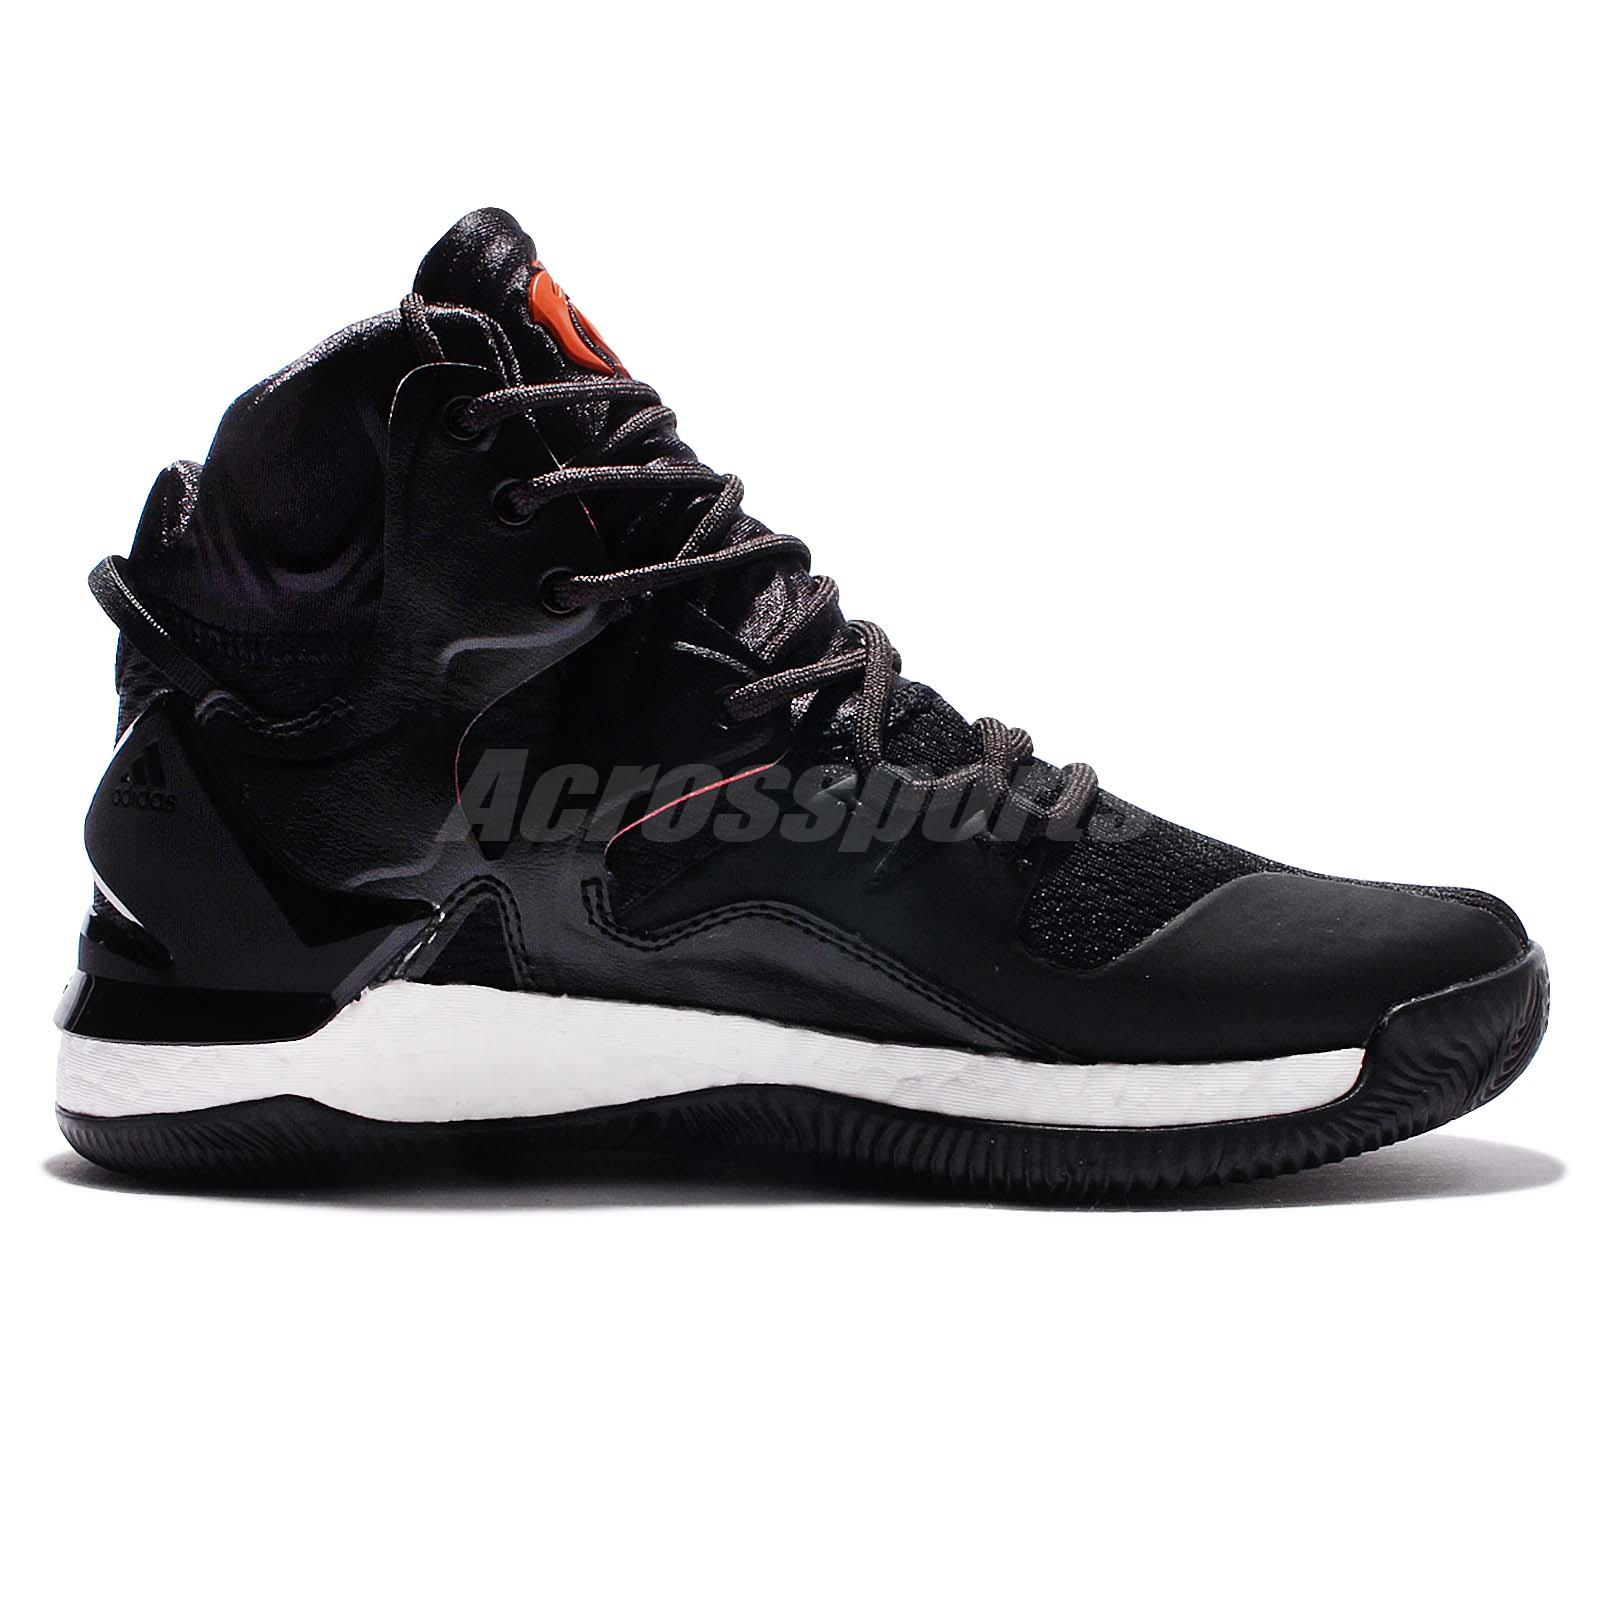 adidas d rose 7 derrick black orange men basketball shoes